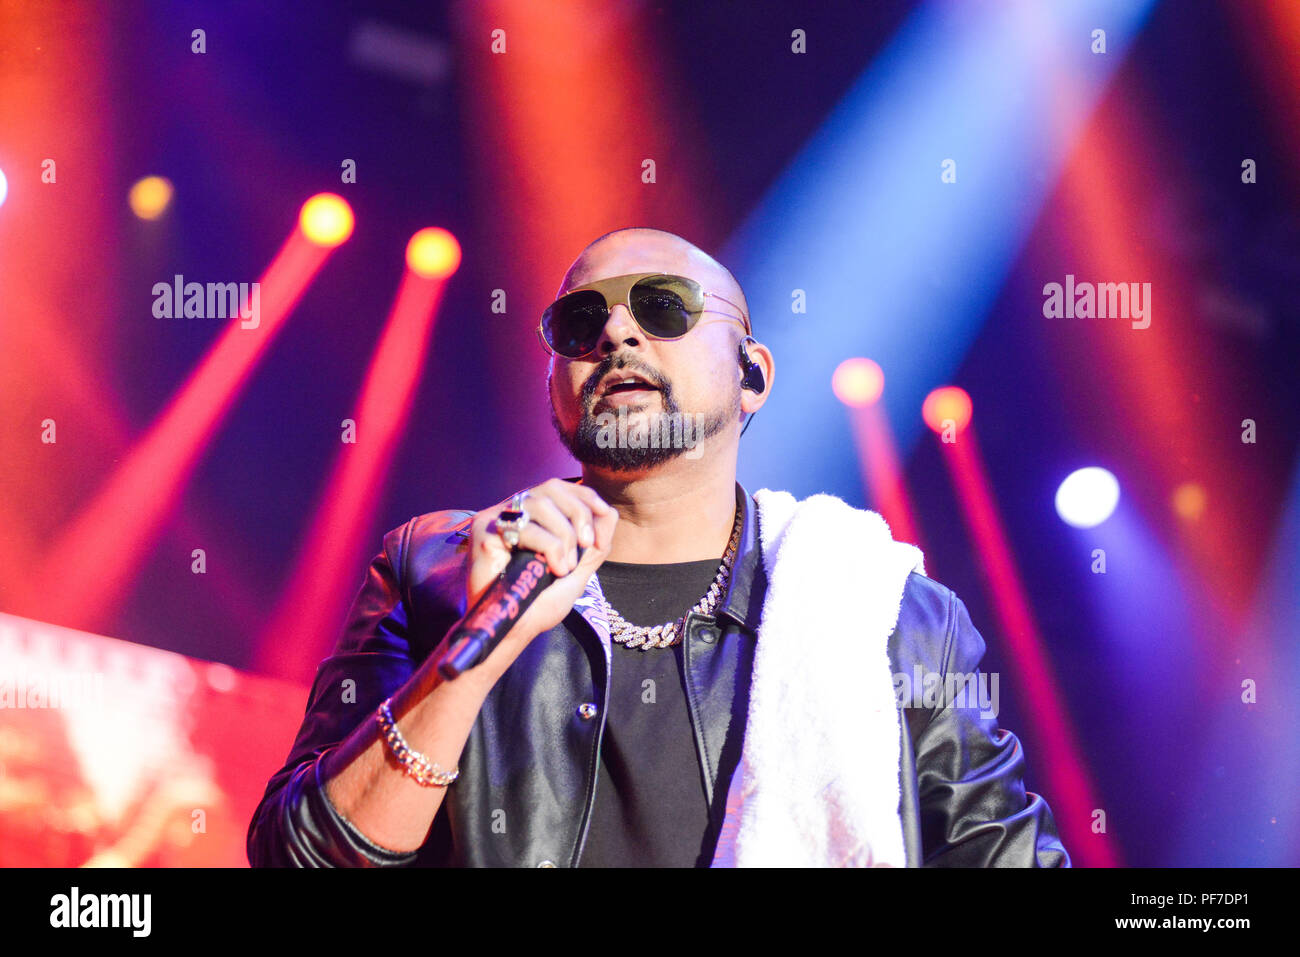 Sean Paul performing at the Ricoh Arena Coventry on 19th